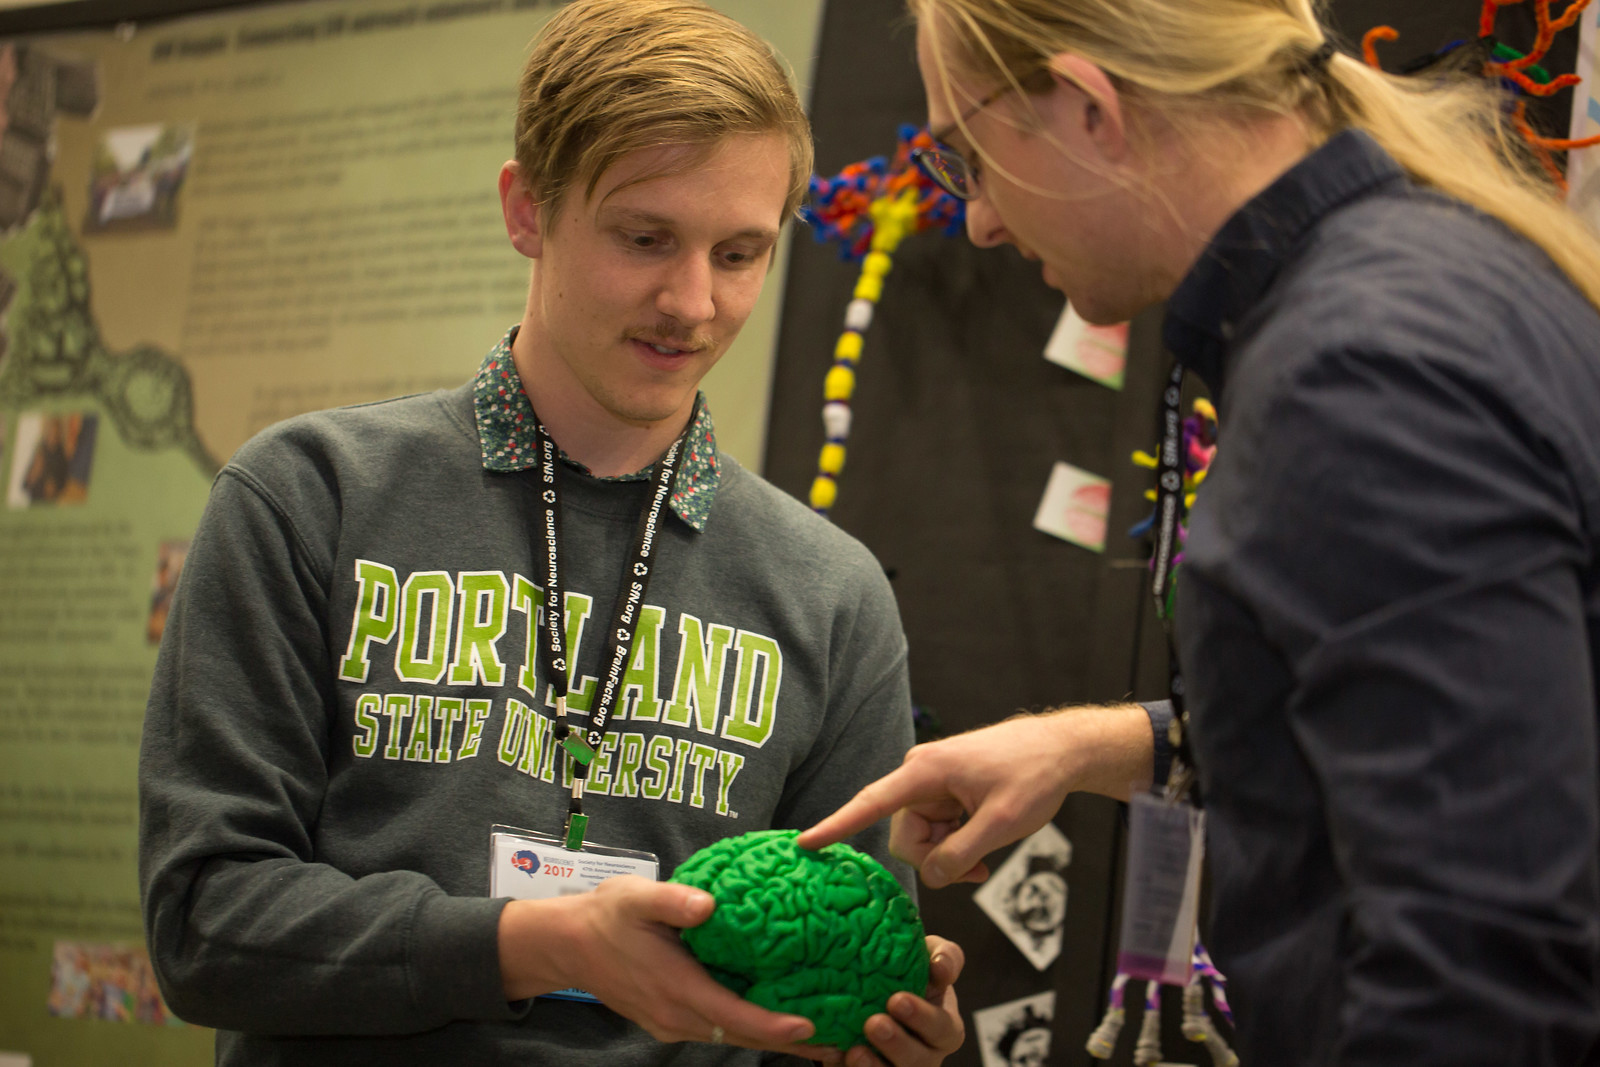 a person holding out a scientific brain model as another person touches the model